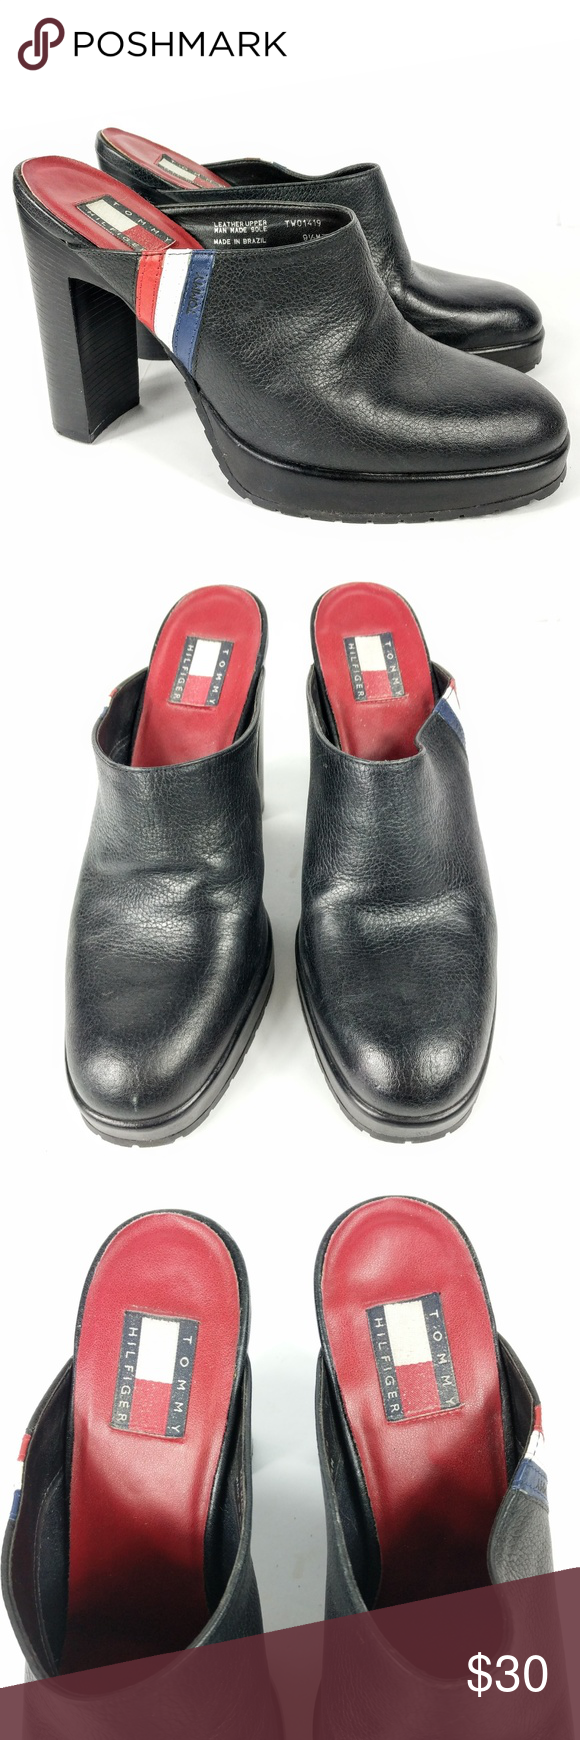 ebb184fd167a1f Tommy Hilfiger Vintage Mules Size 9.5M Clogs Black Tommy Hilfiger Womens  Mules Size 9.5 M Vintage Clogs Black Leather Block Stacked Heel Red Blue  White ...